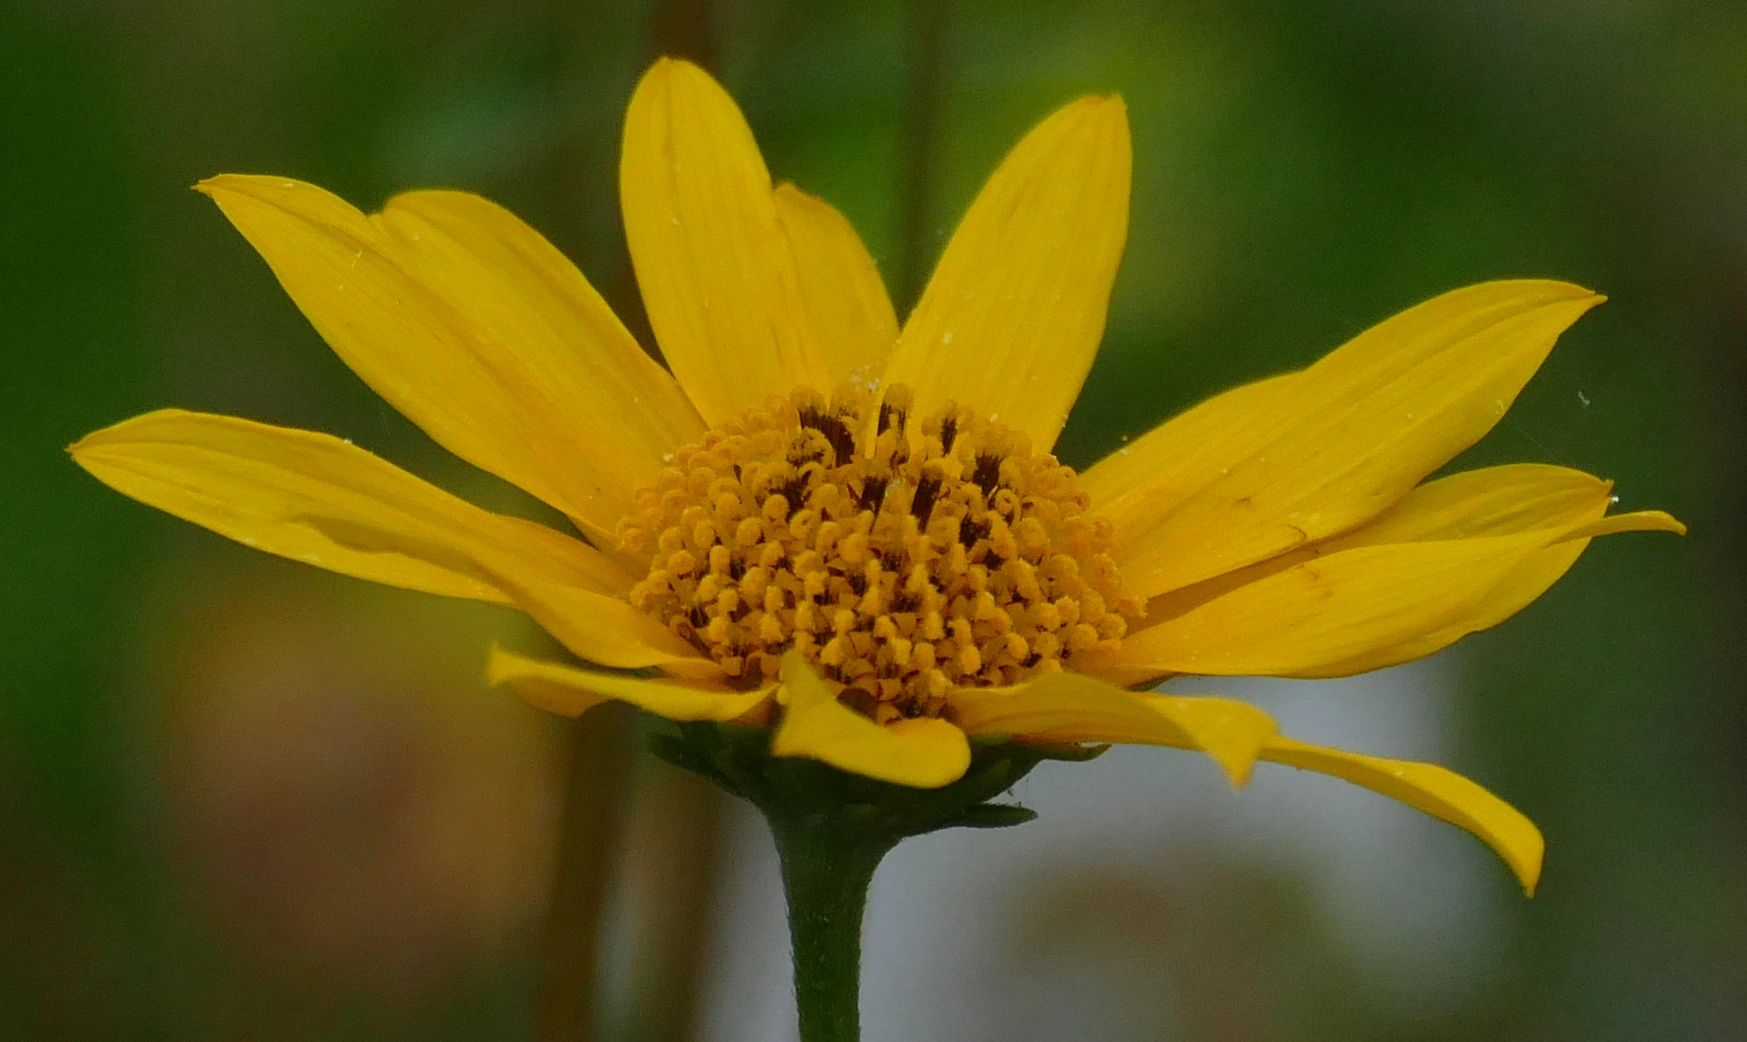 "{""blocks"":[{""key"":""4jgbe"",""text"":"" Helianthus occidentalis few leaf Western Sunflower - potted plants email john@easywildflowers.com \t"",""type"":""unstyled"",""depth"":0,""inlineStyleRanges"":[],""entityRanges"":[],""data"":{}}],""entityMap"":{}}"